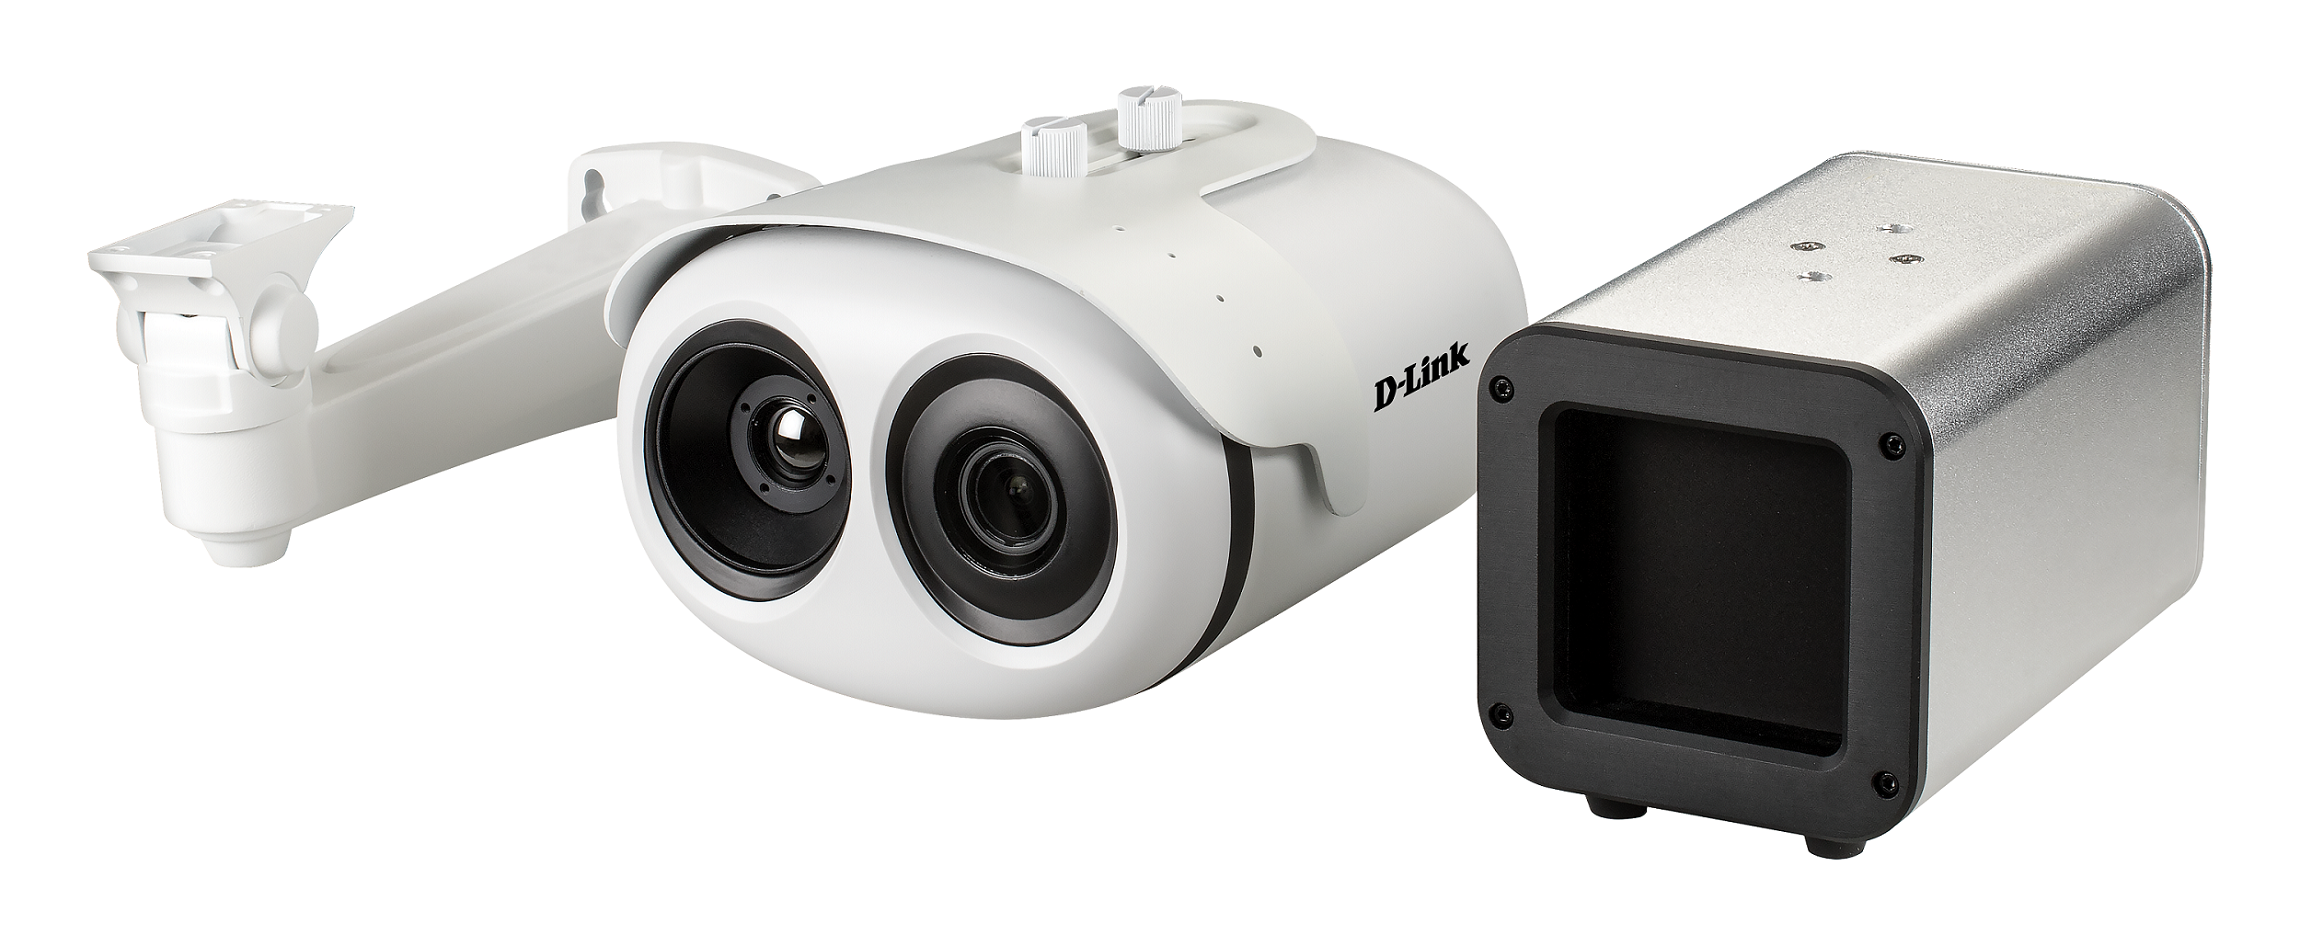 D-Link Unveils Fever Screening Camera Kit